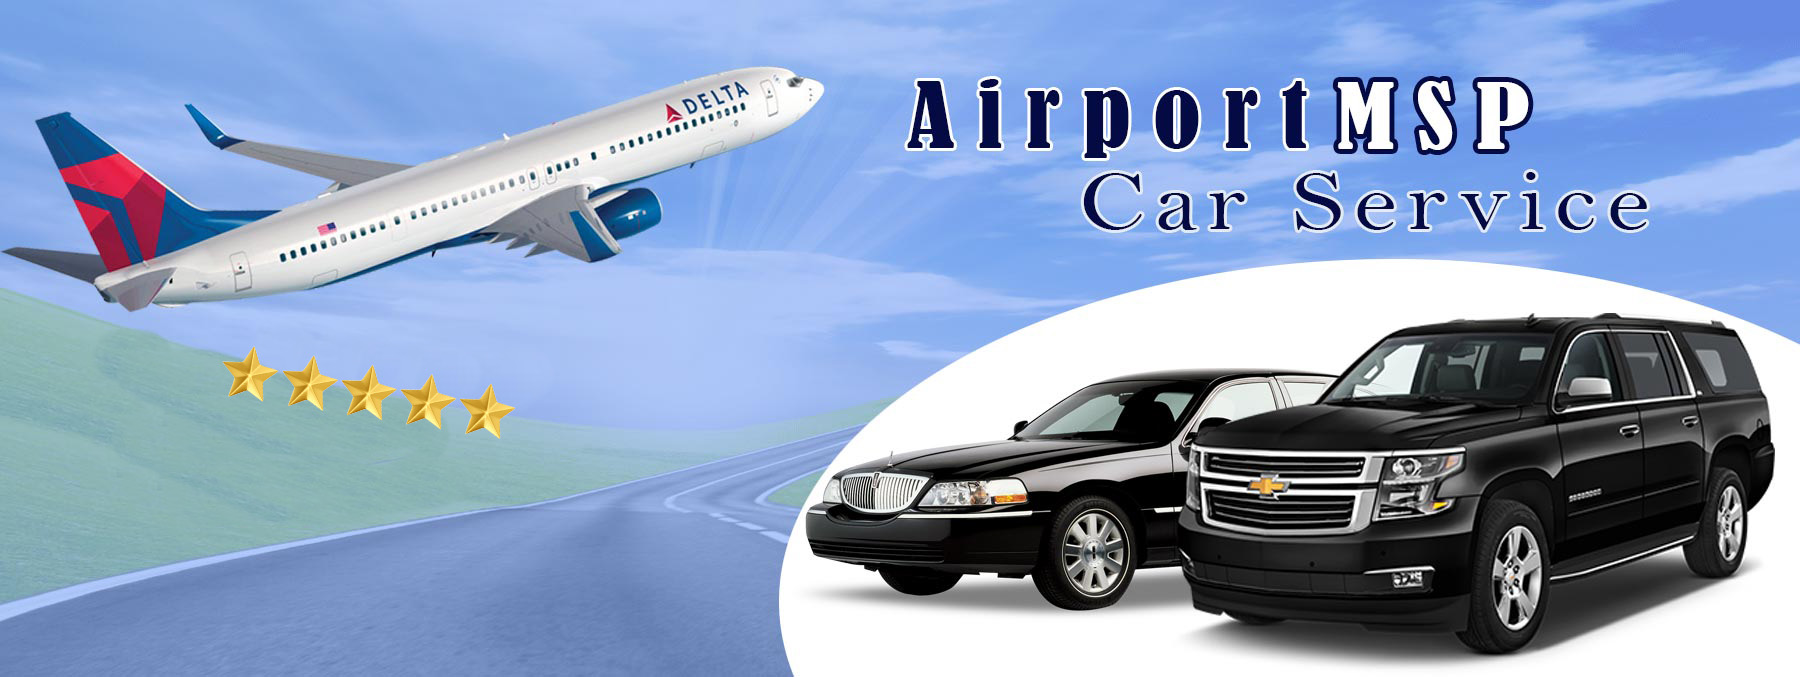 Msp To Duluth Car Service